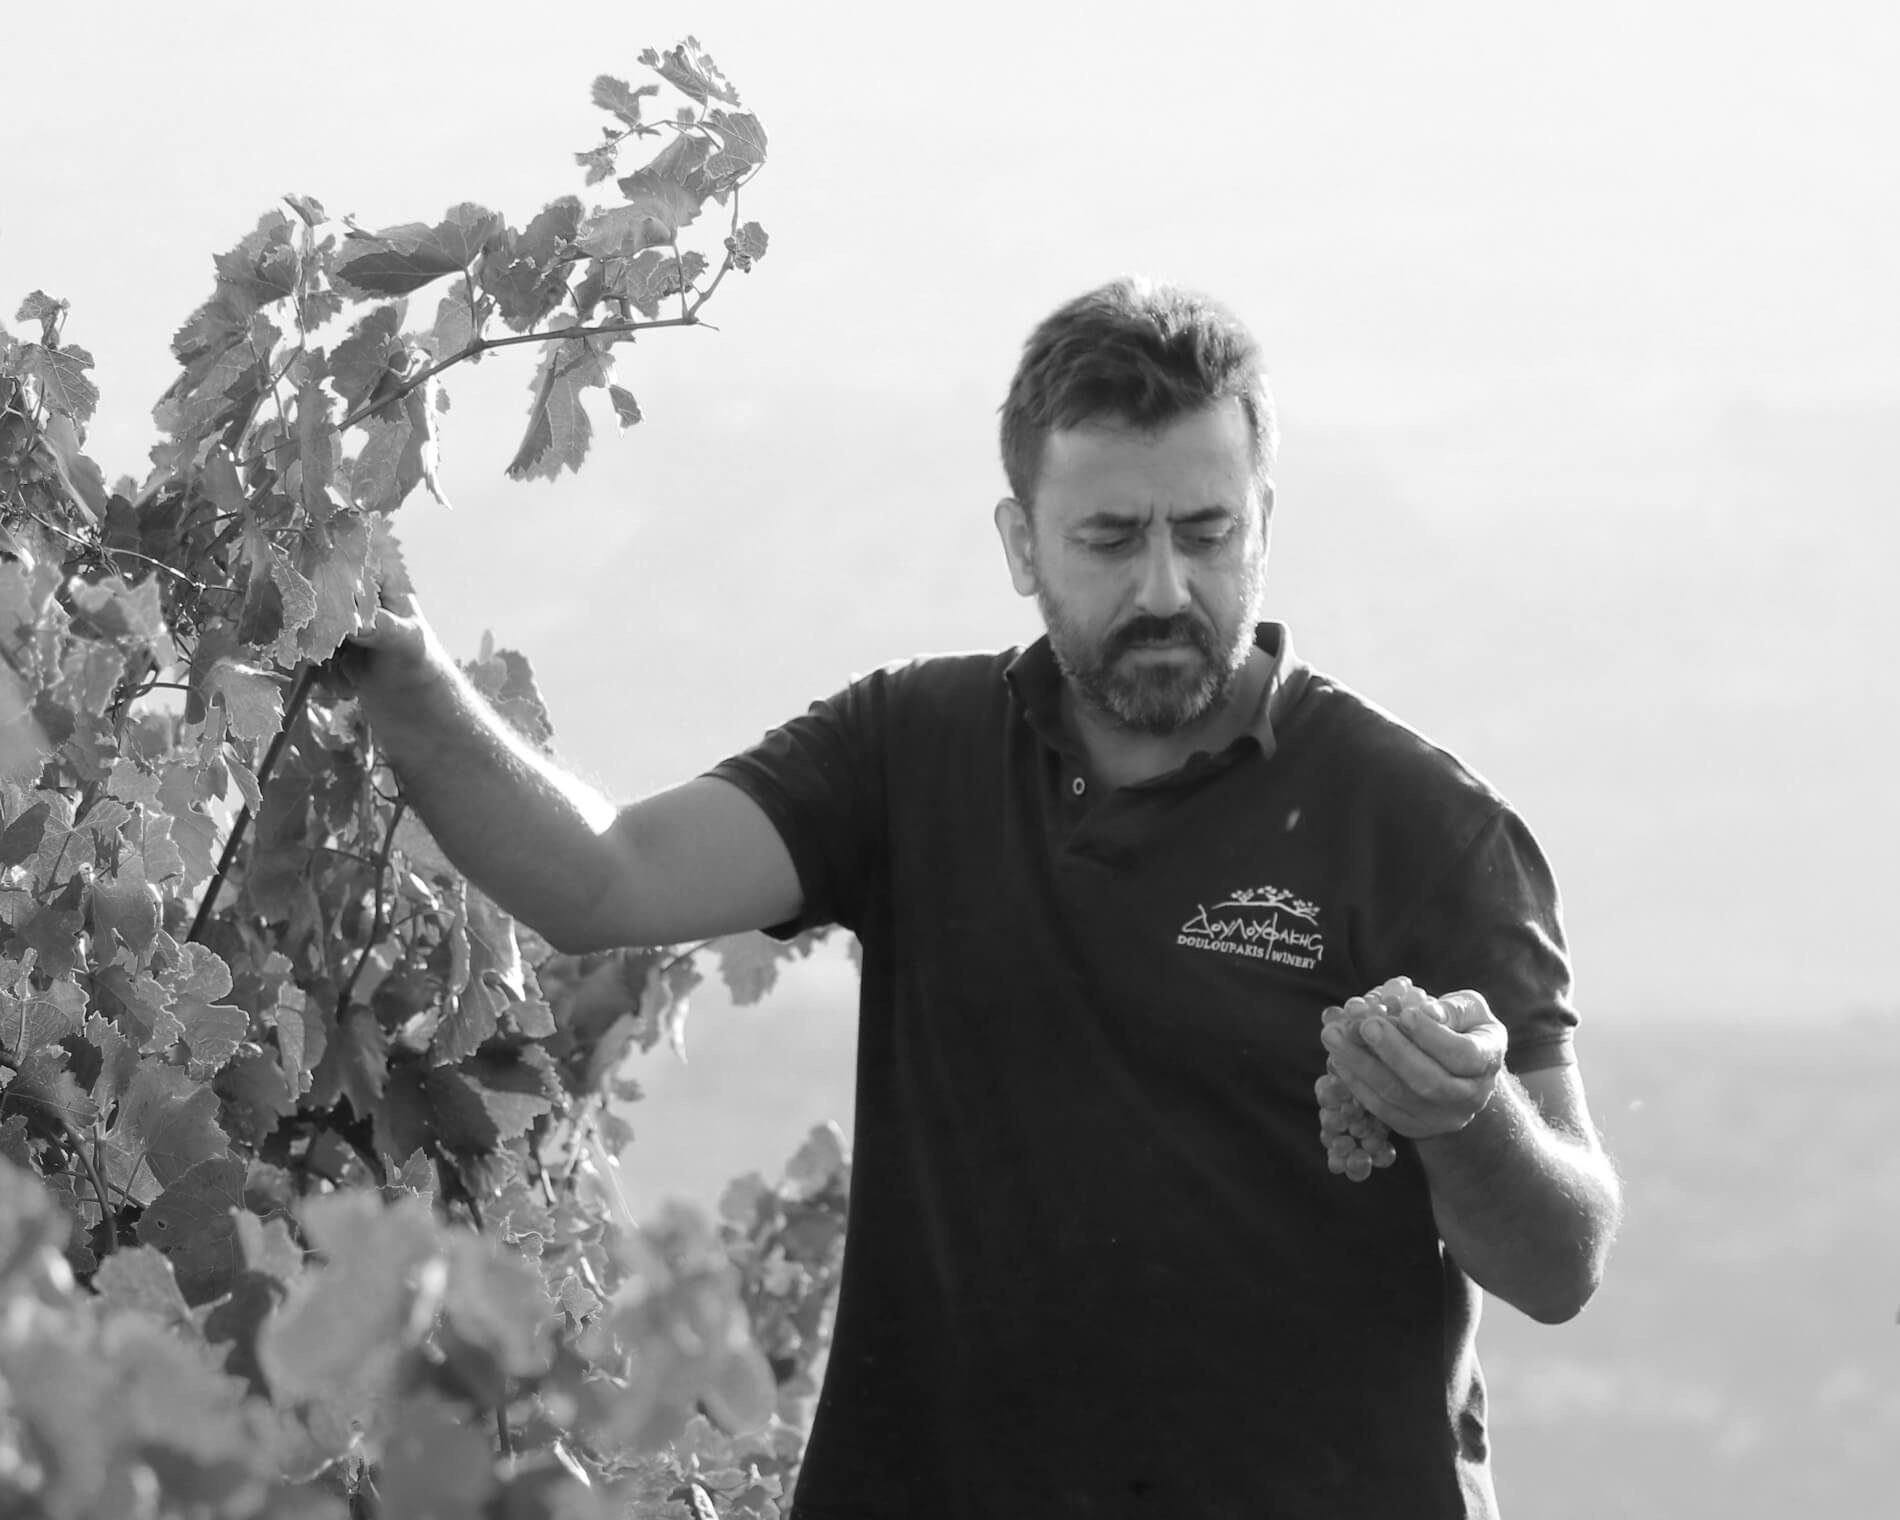 Douloufakis Nikos Winemaker from Crete, Greece